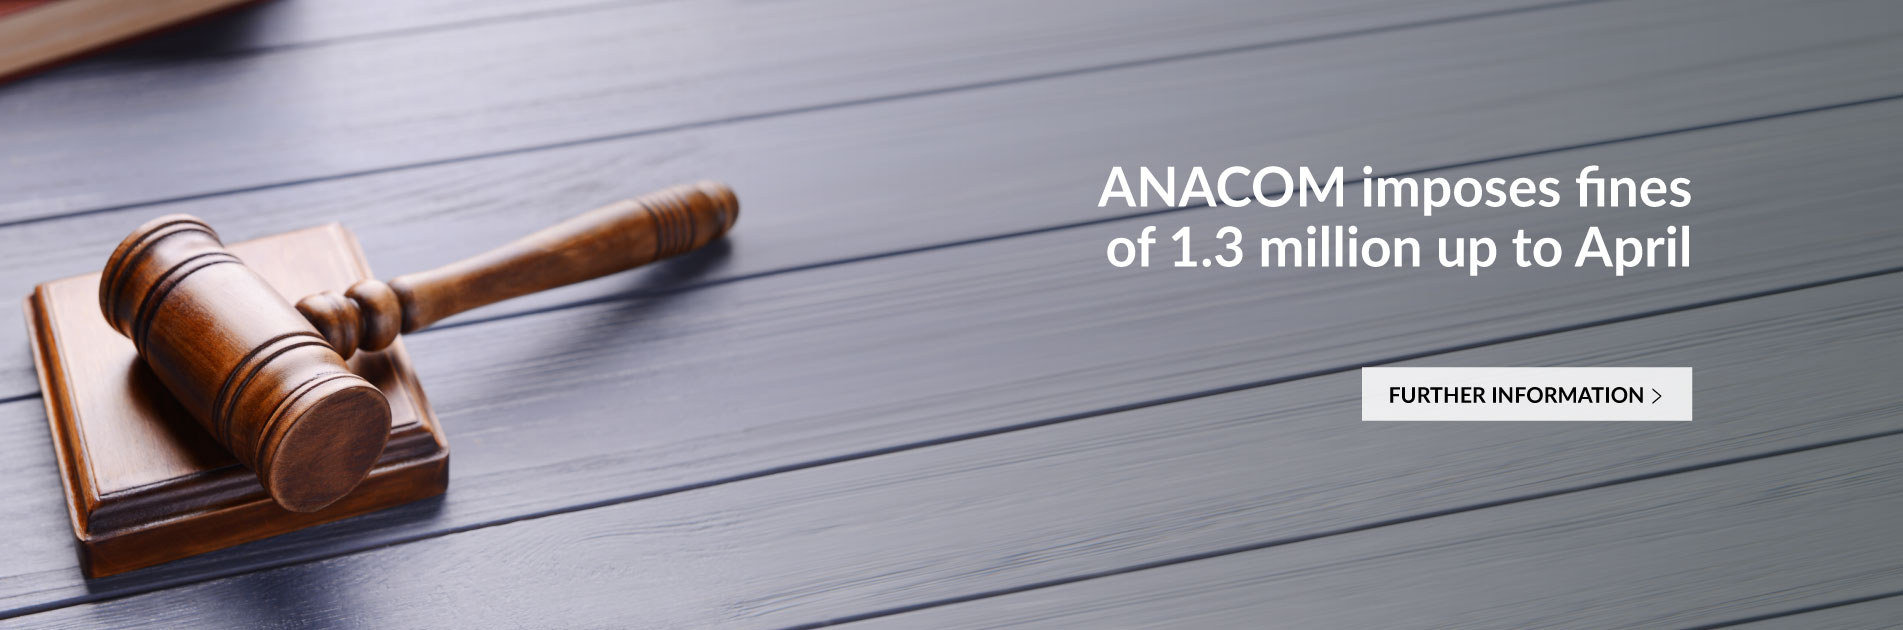 Between January and April 2020, ANACOM decided on 82 administrative offence proceedings, of which 57 ended with the imposition of fines.